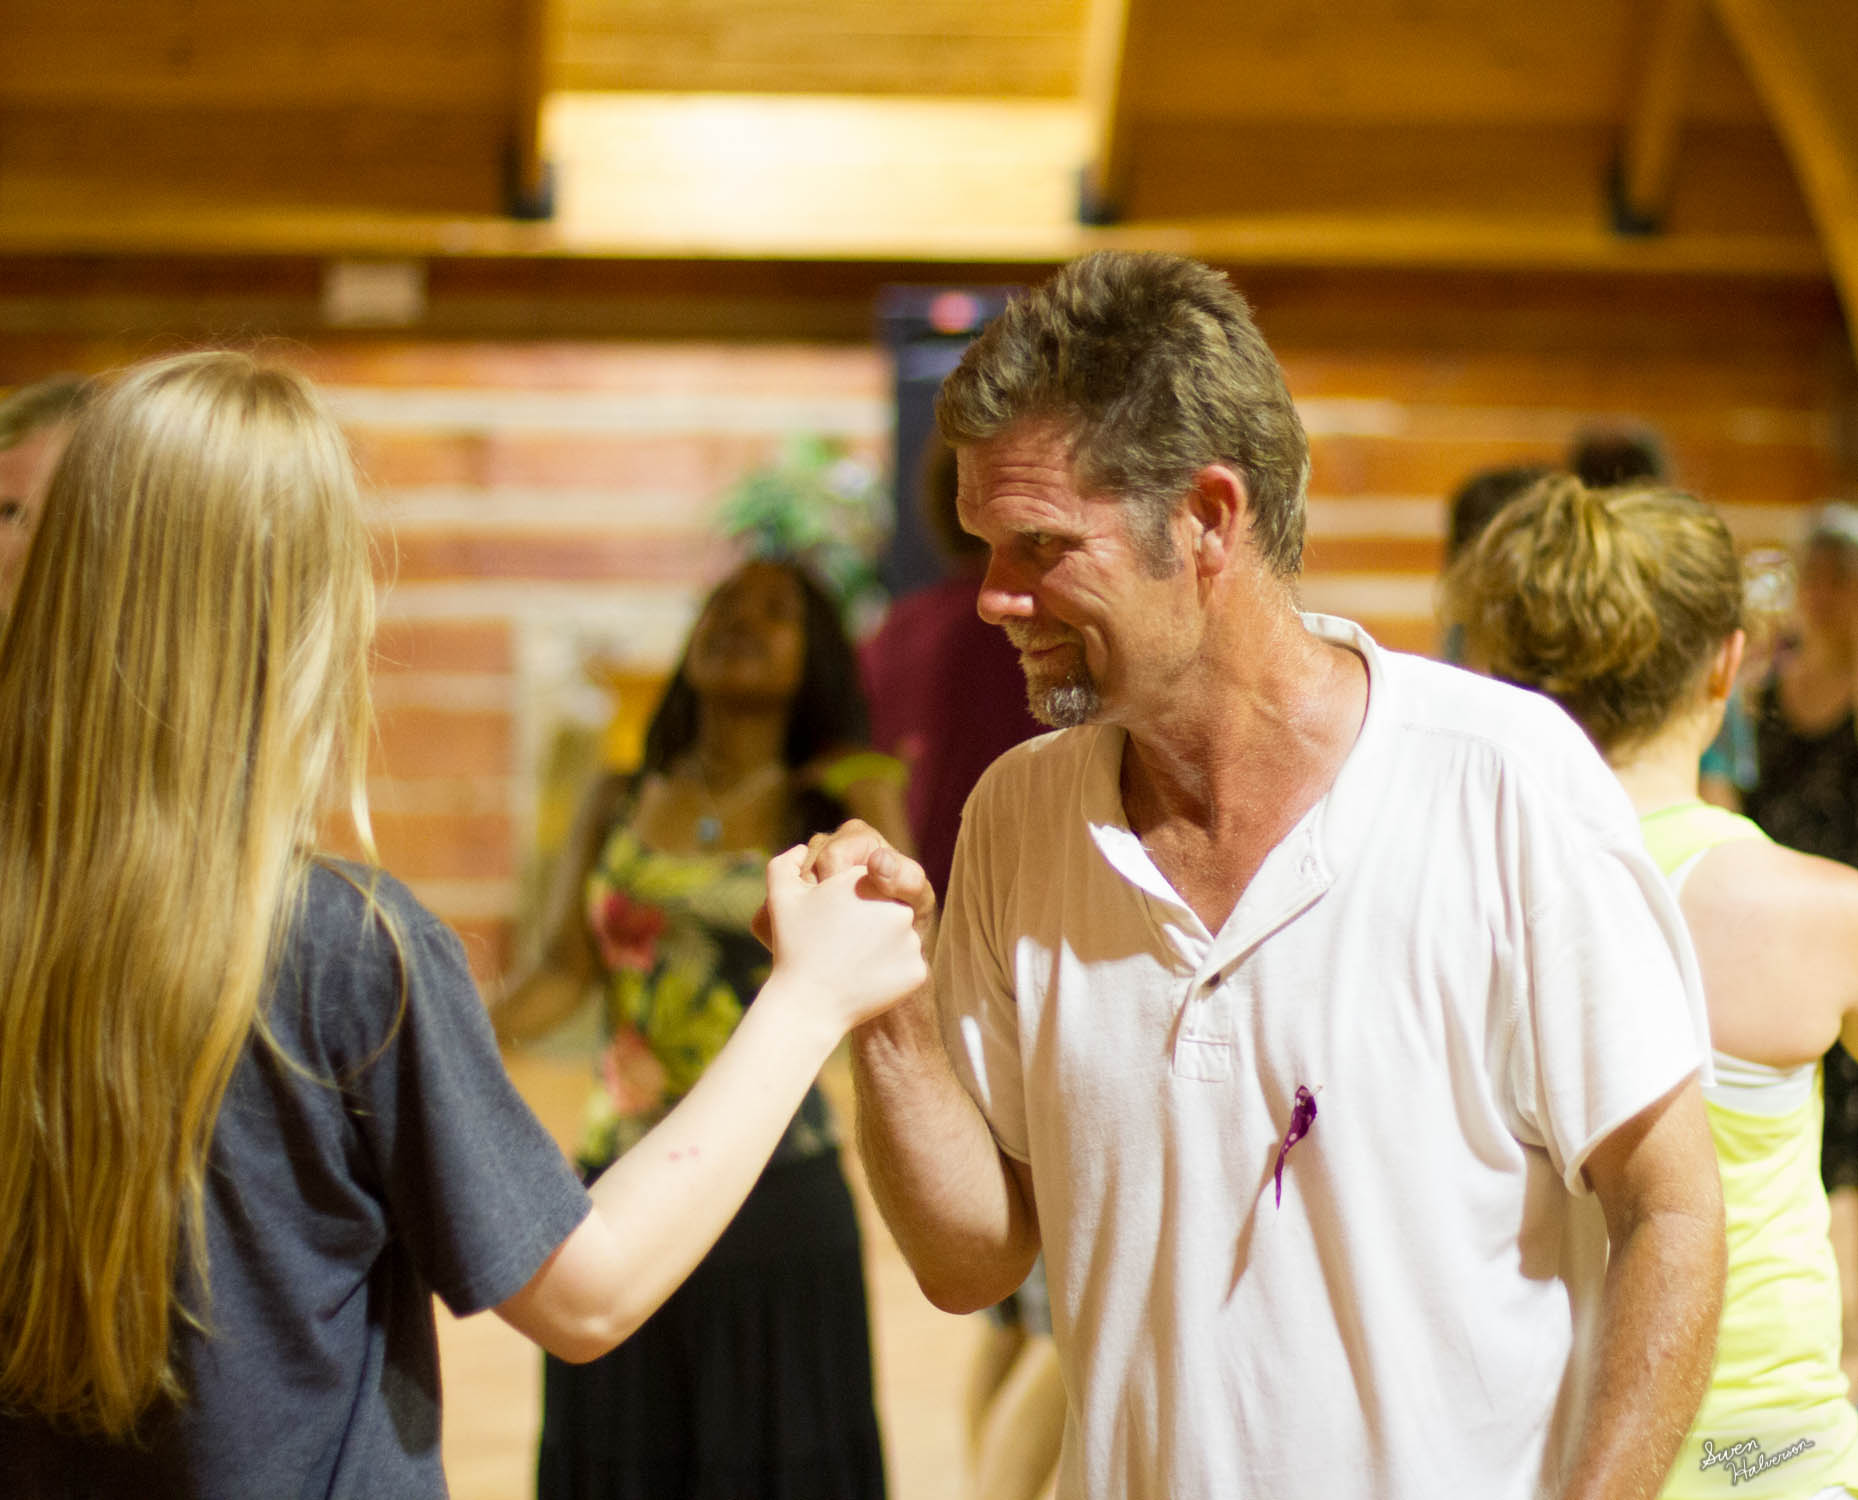 Contra dancing in Berea-020.jpg